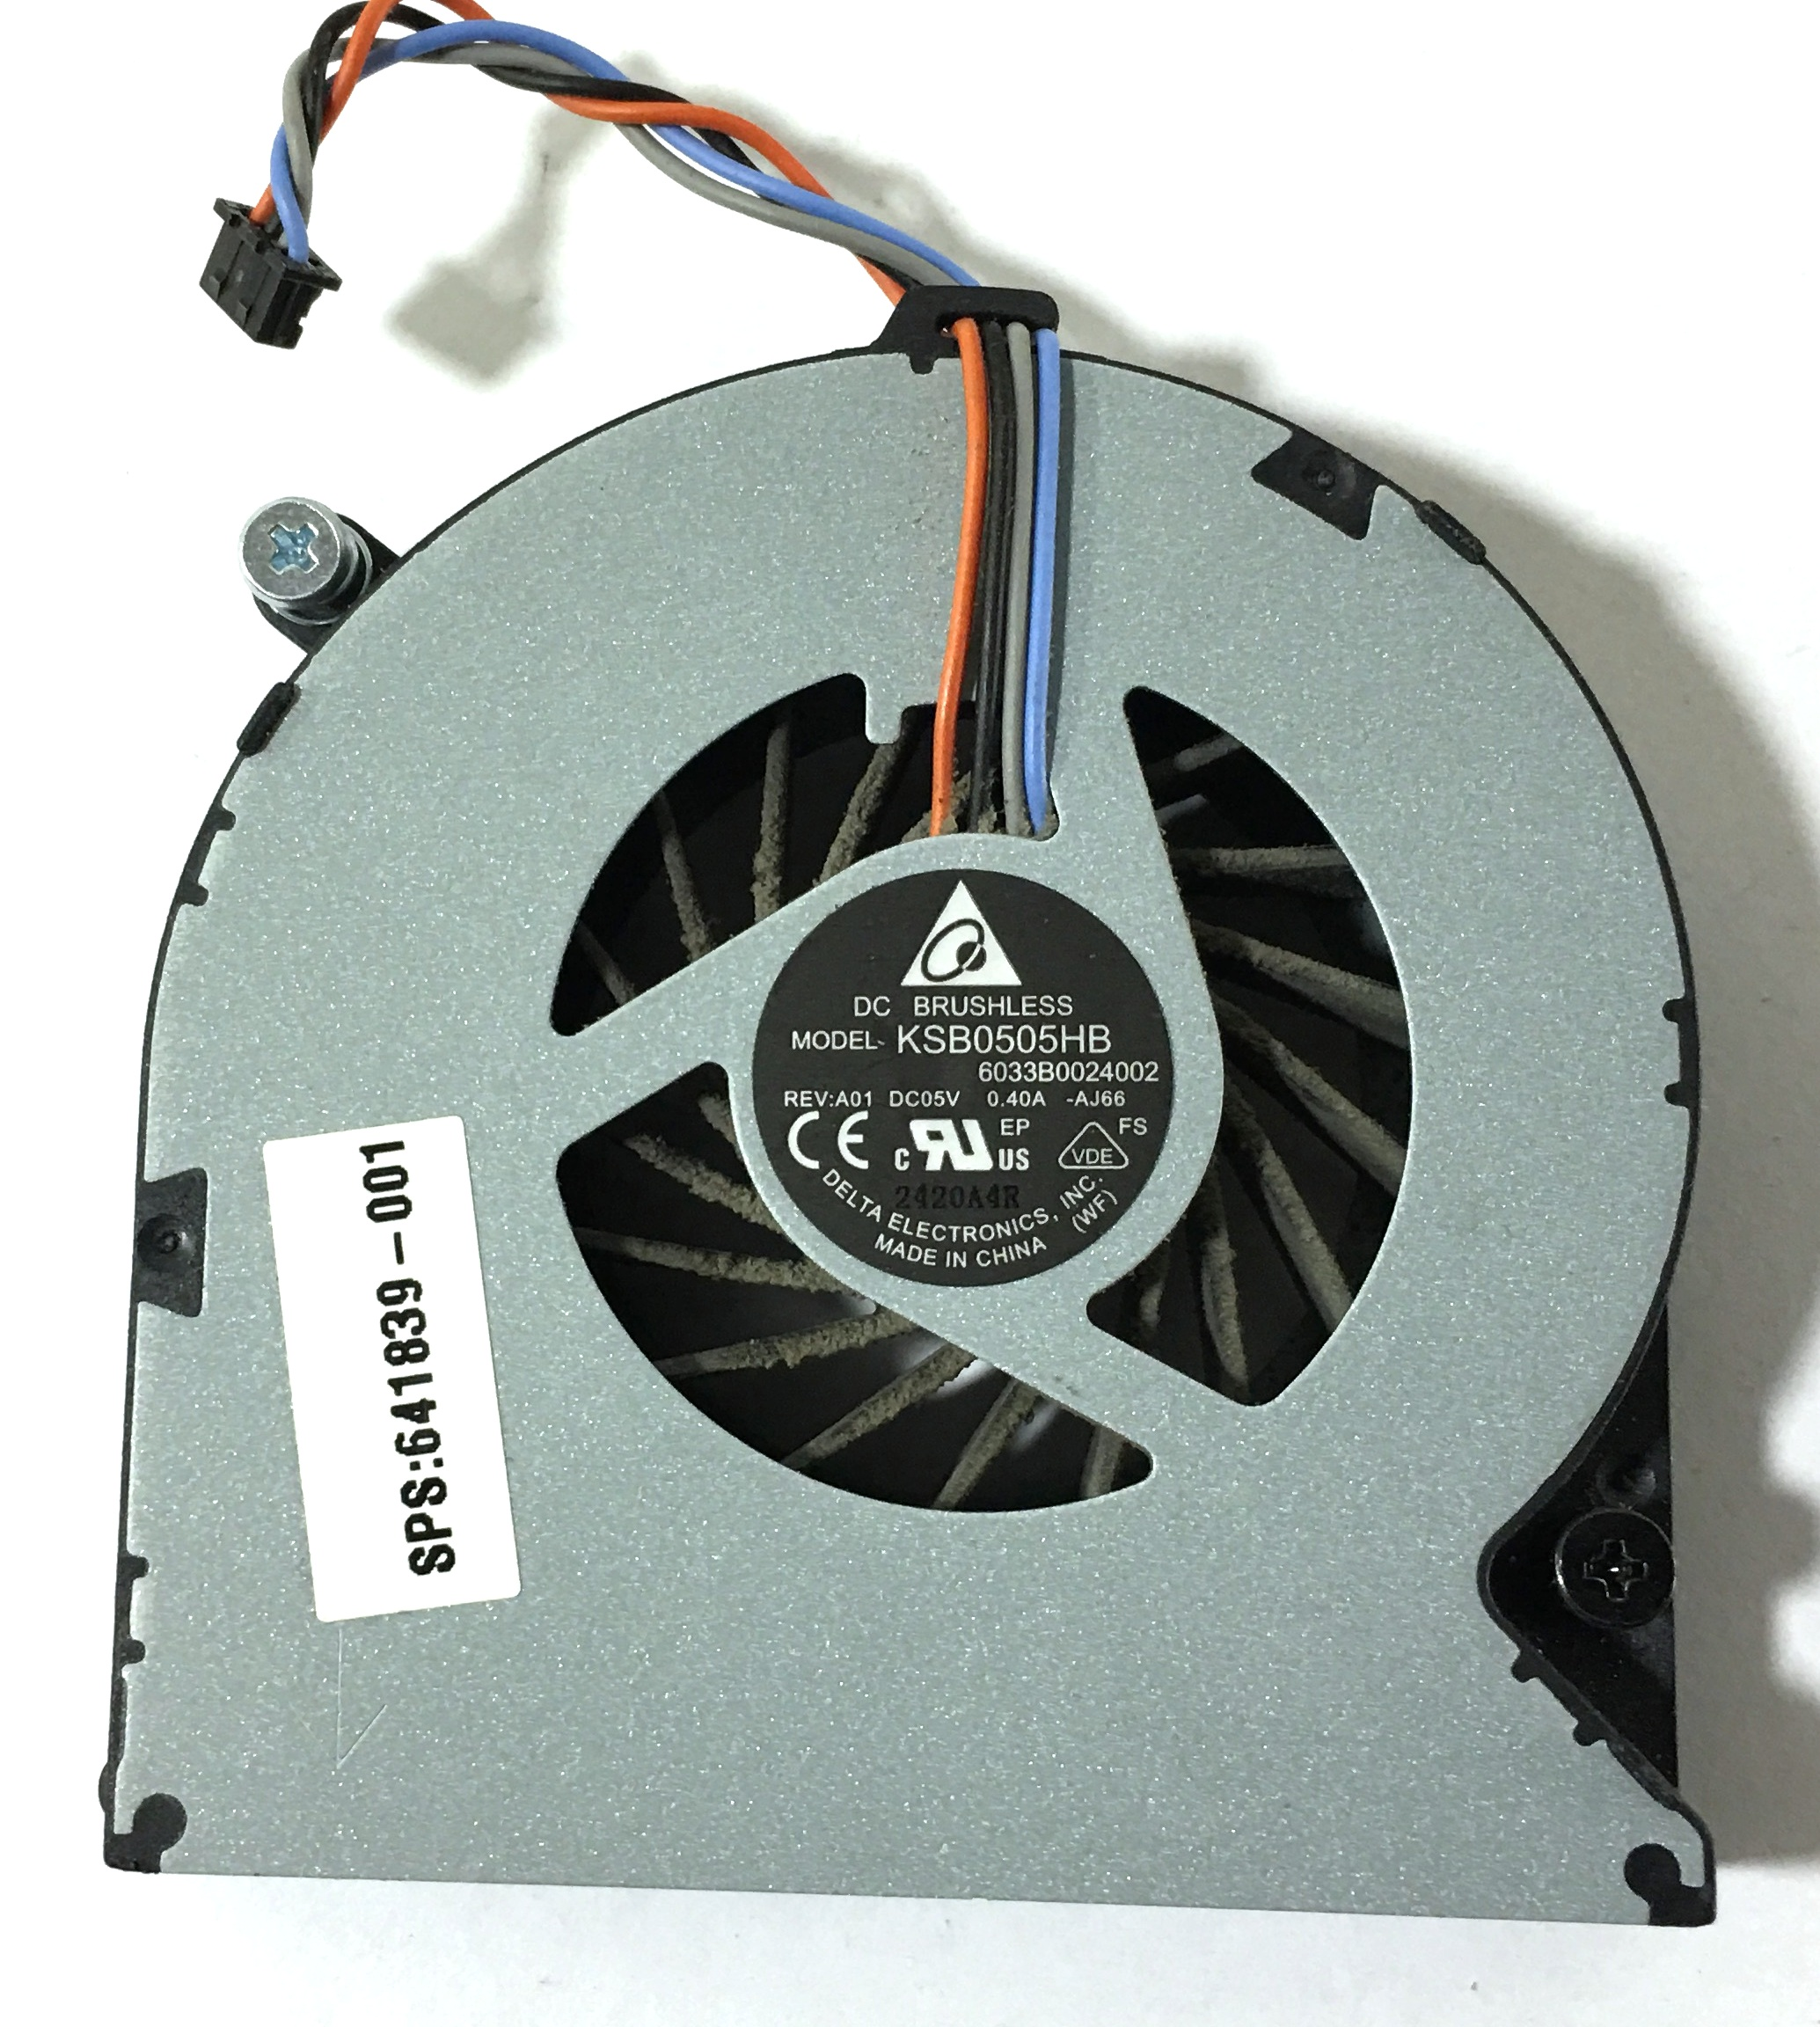 Details about Genuine HP Elitebook 8470p 8460p CPU Processor Cooling Fan  641839-001 KSB050HB